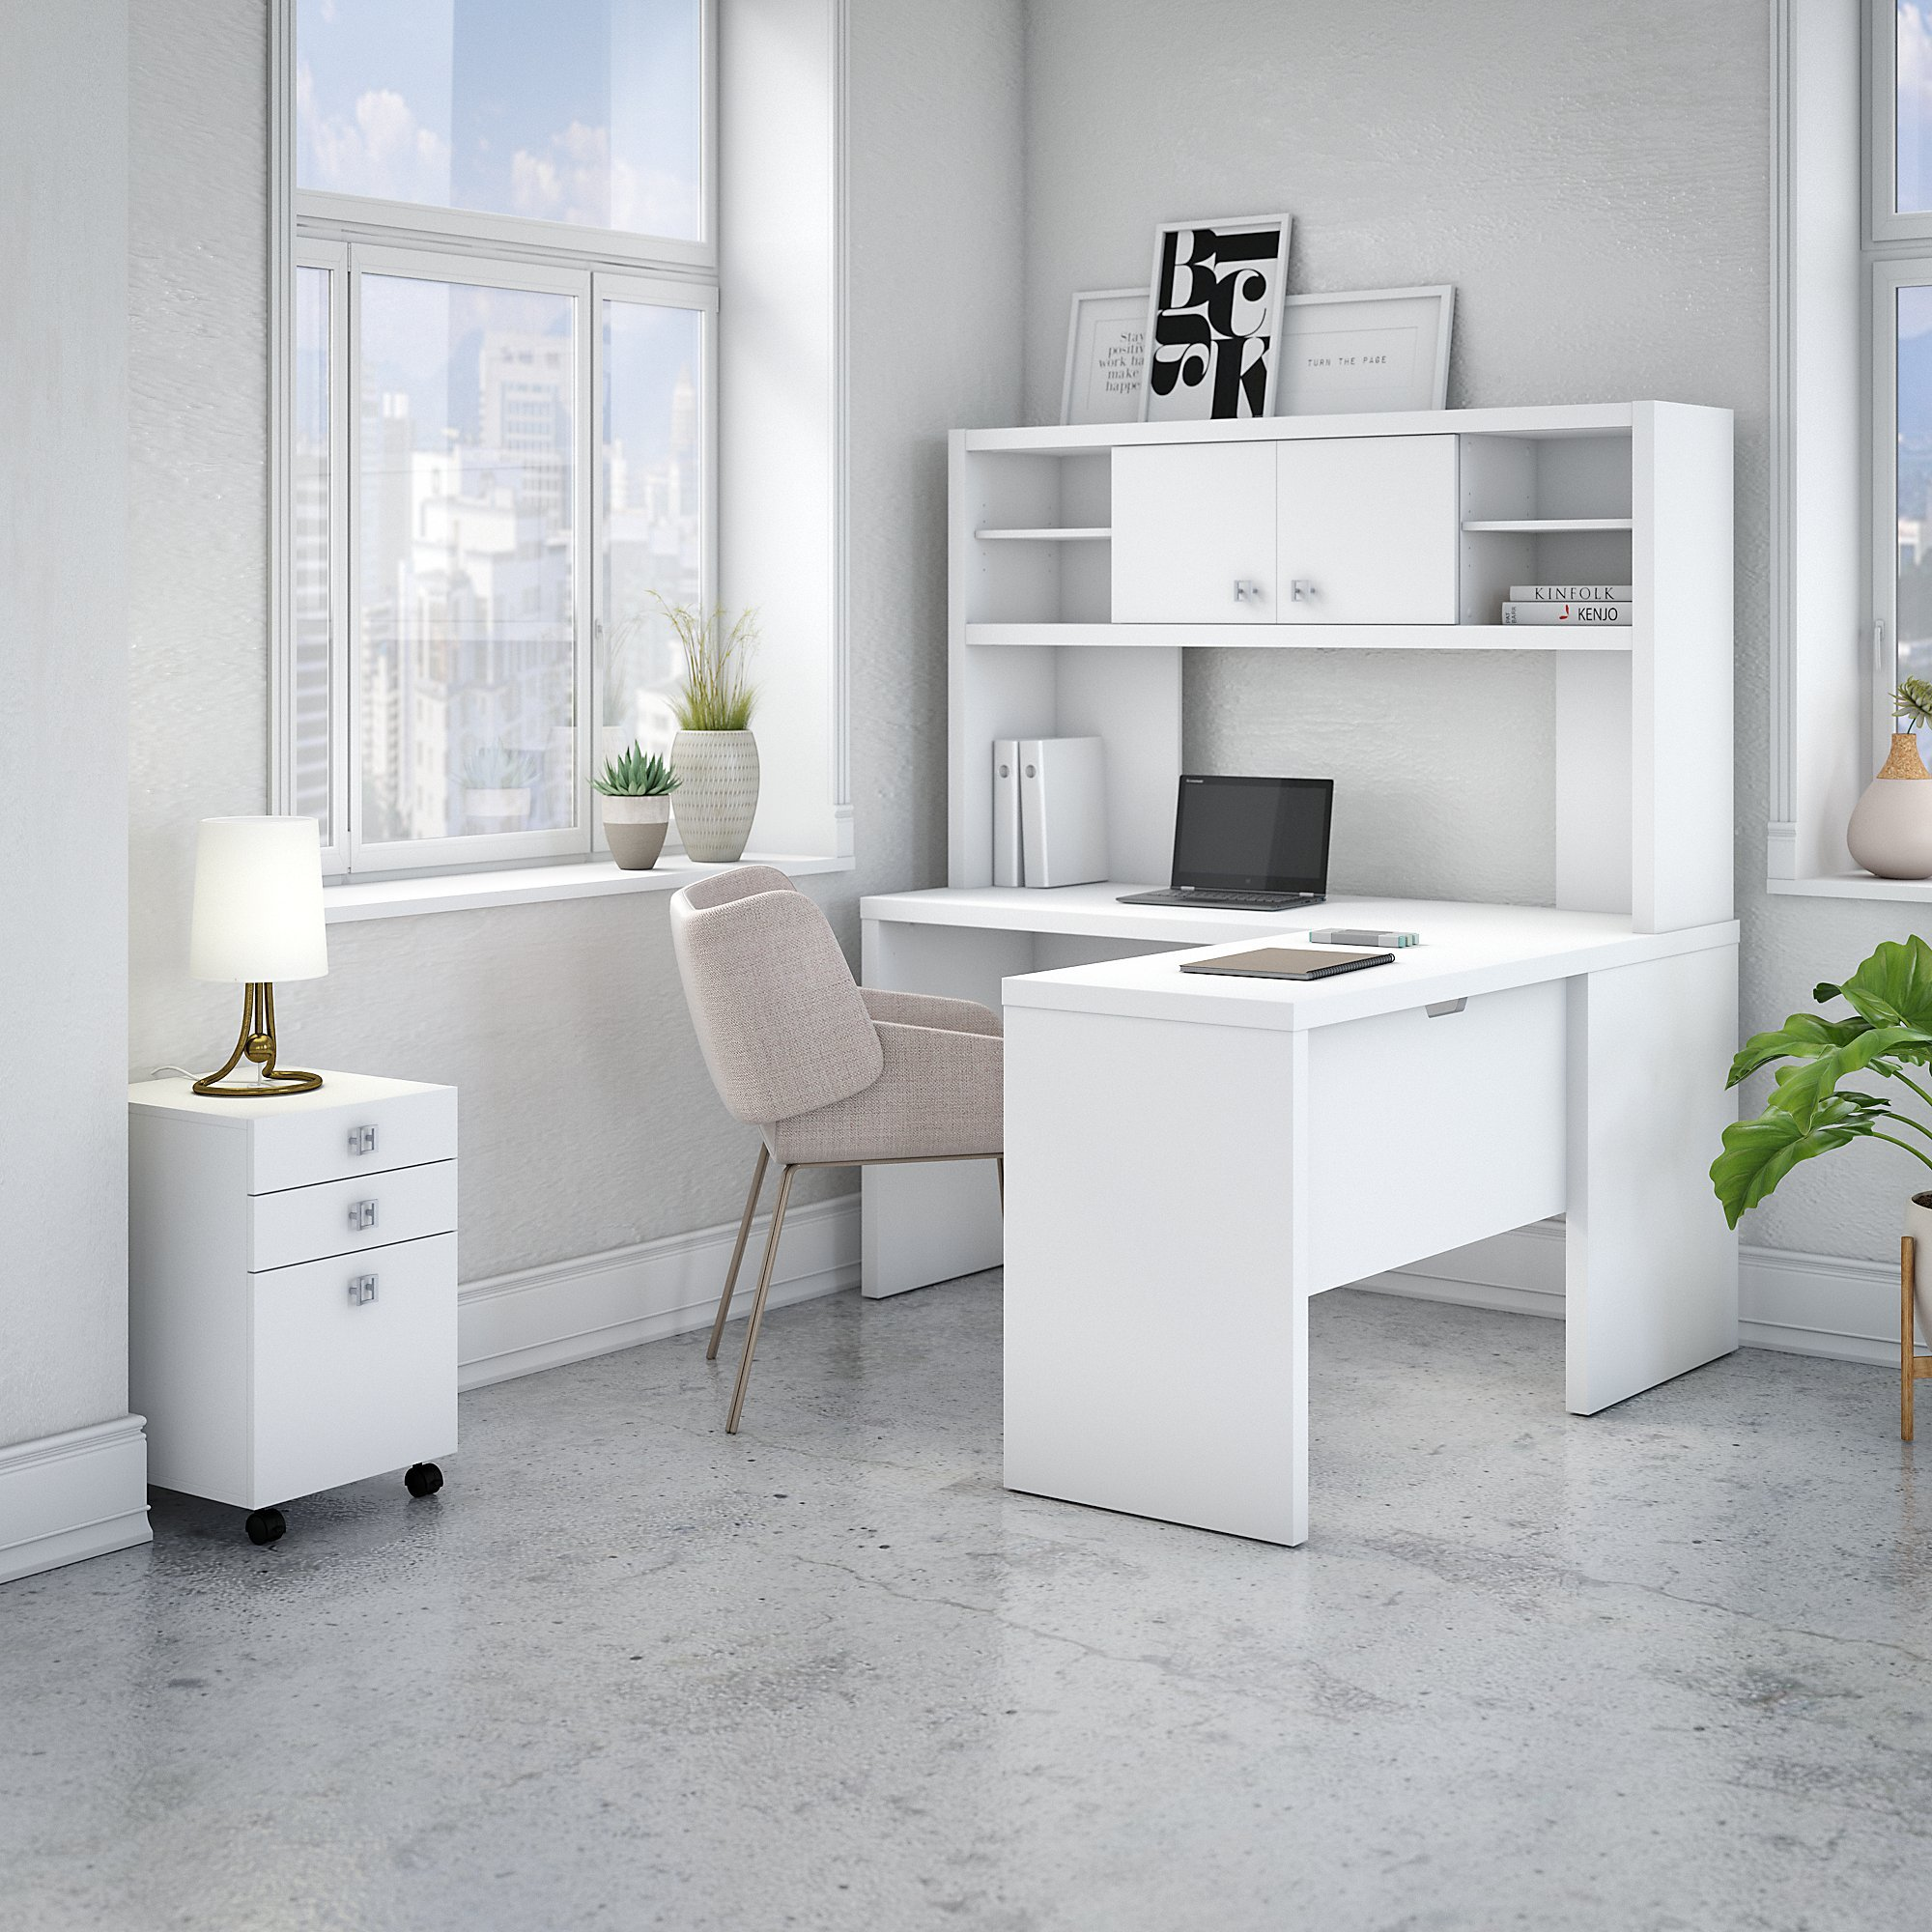 Office by kathy ireland Echo L Shaped Desk with Hutch and Mobile File Cabinet in Pure White by Office by kathy ireland (Image #2)